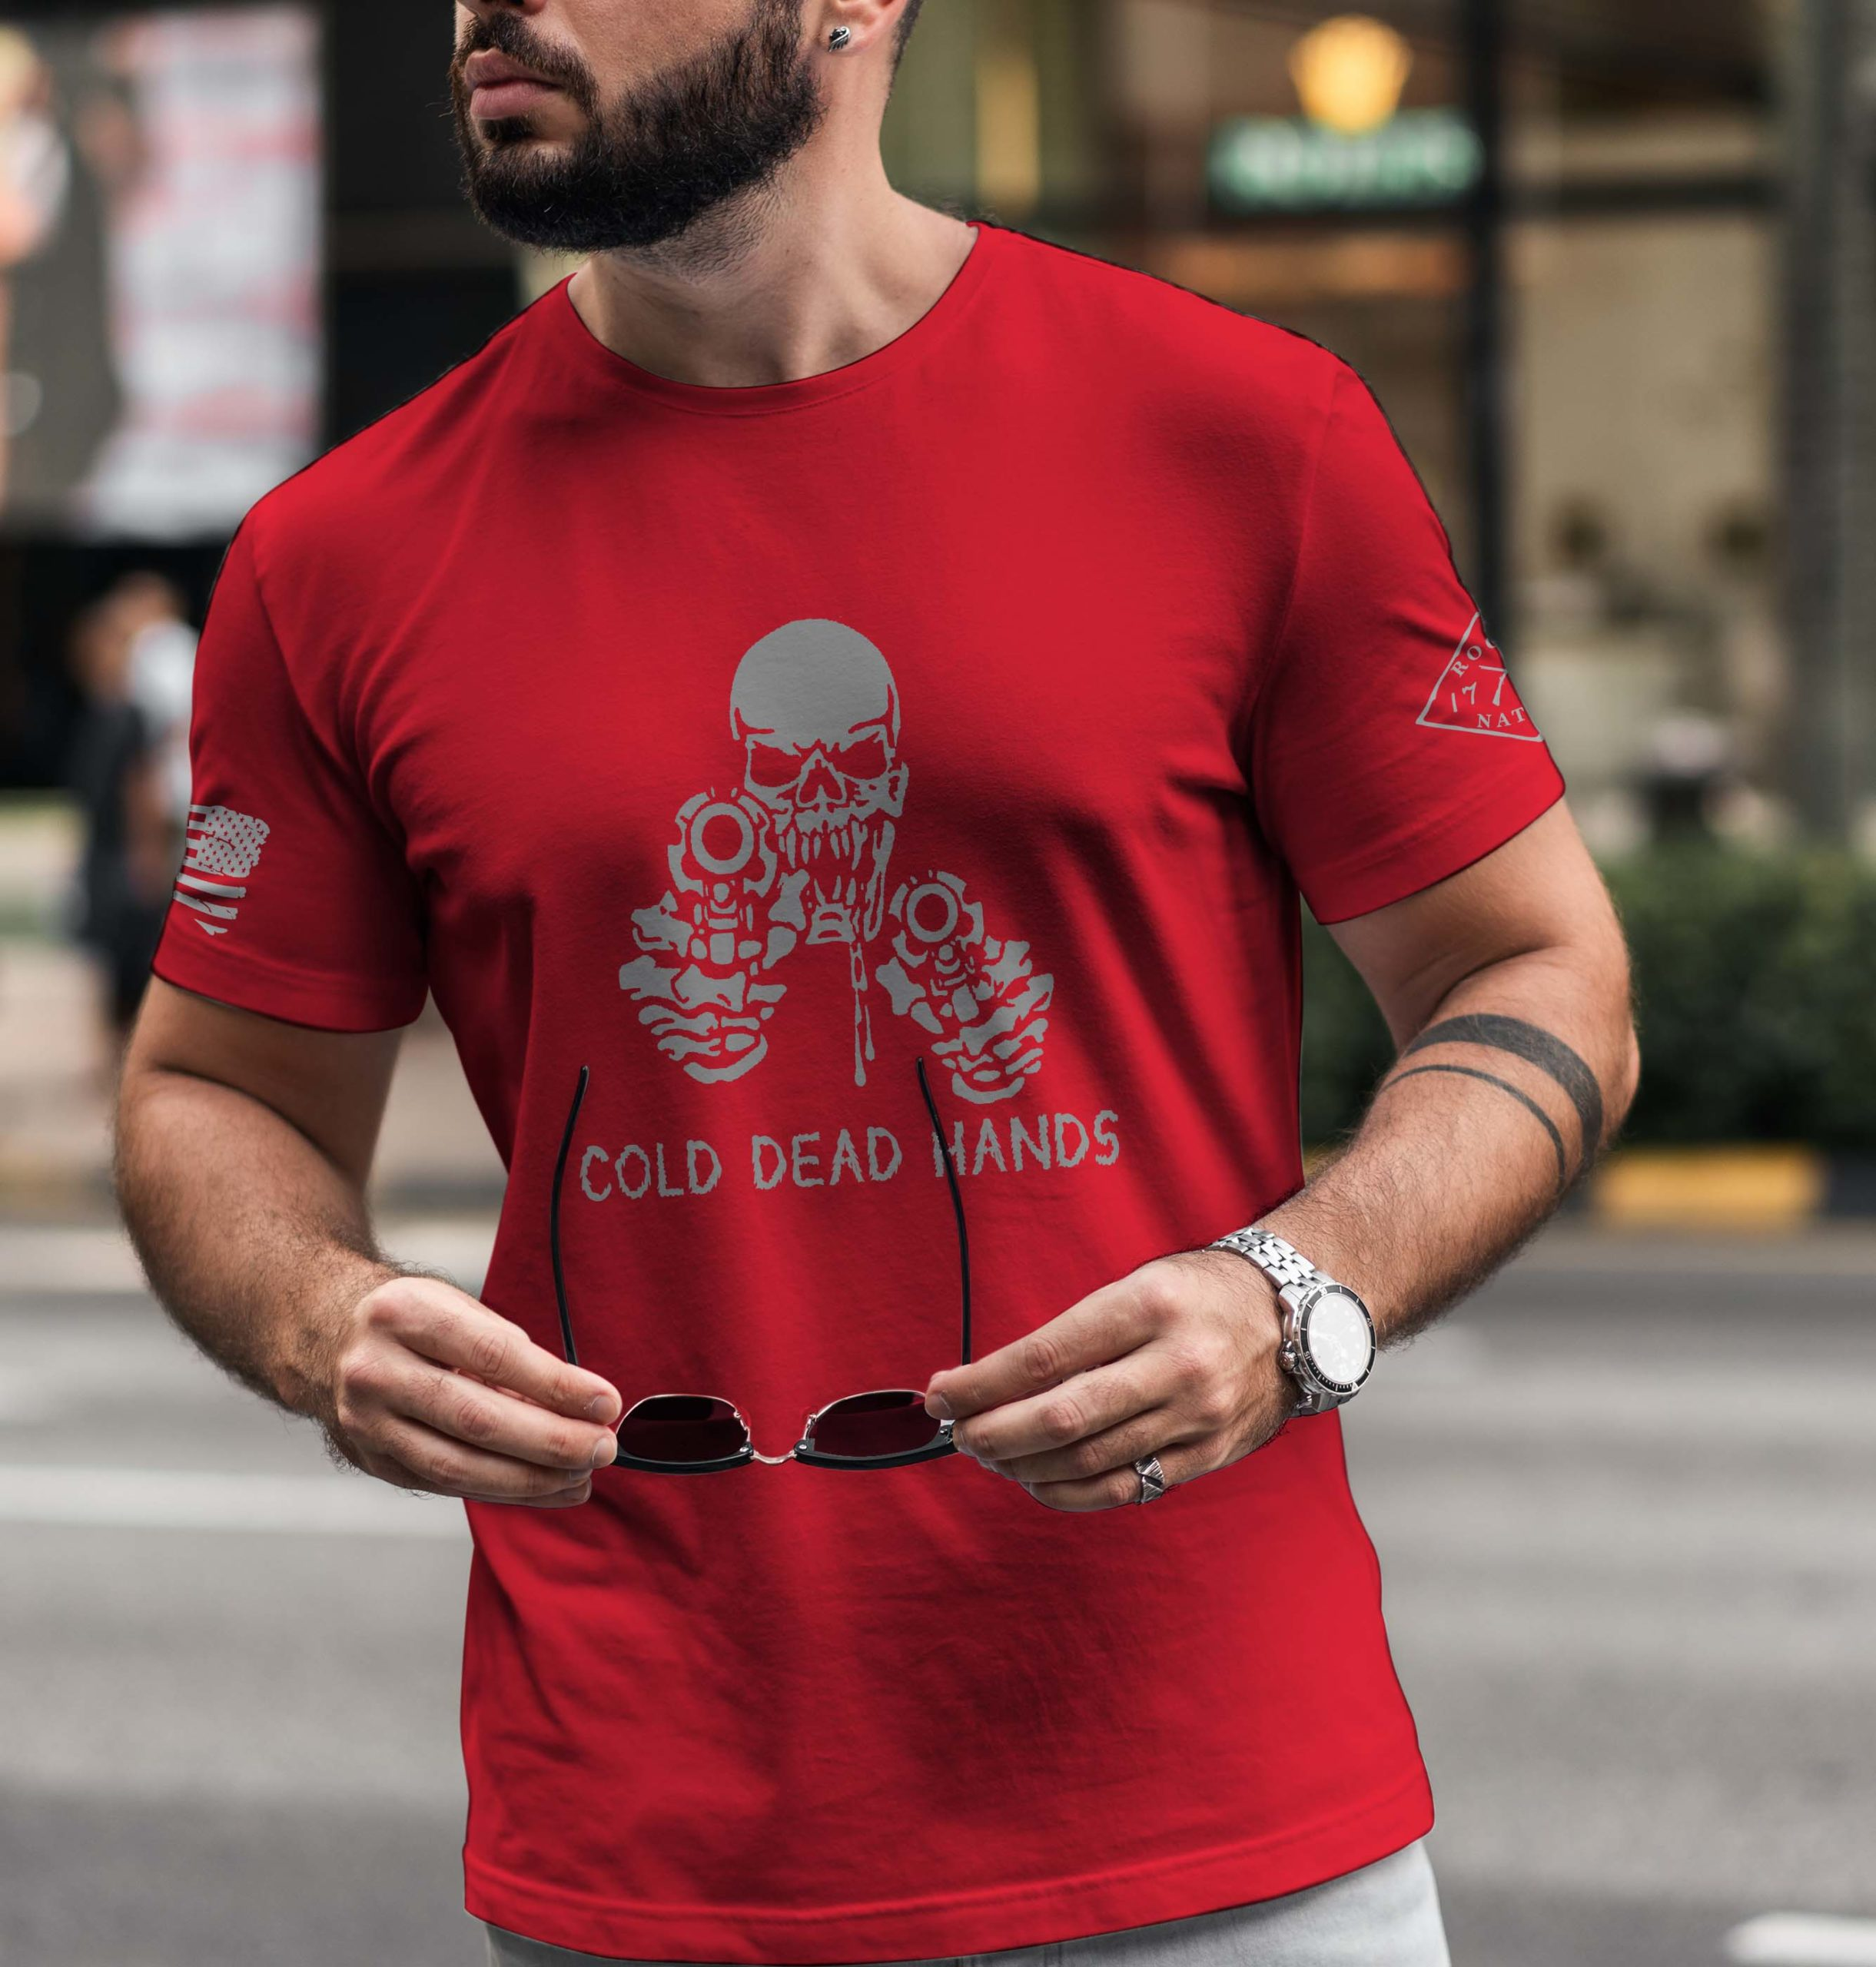 t-shirt cold dead hands red men's